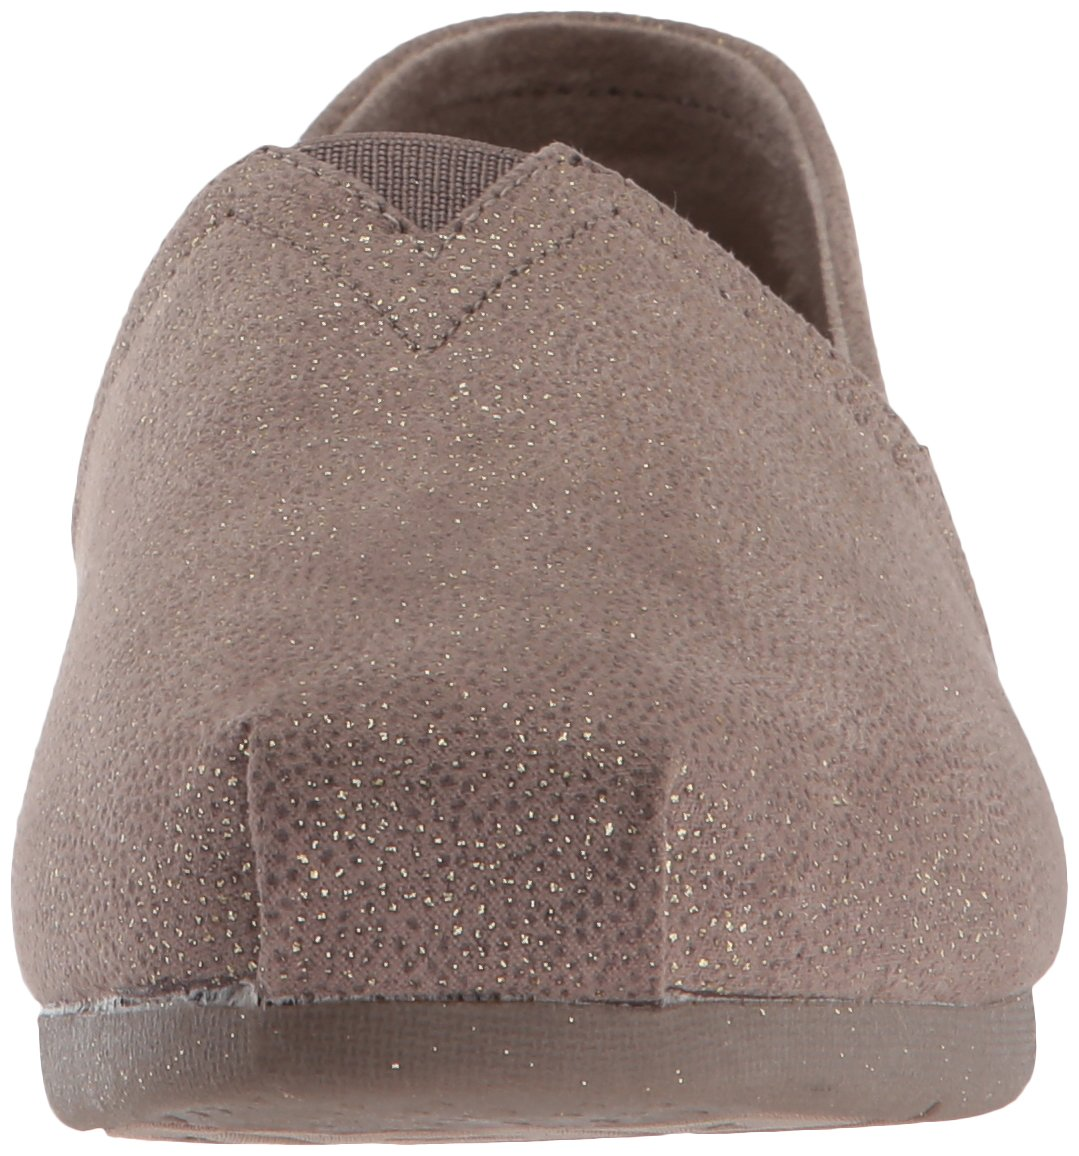 Skechers BOBS from Women's Flat Luxe Bobs-Sparkle Dot Ballet Flat Women's B074KH6H59 7 M US|Taupe 9df79a